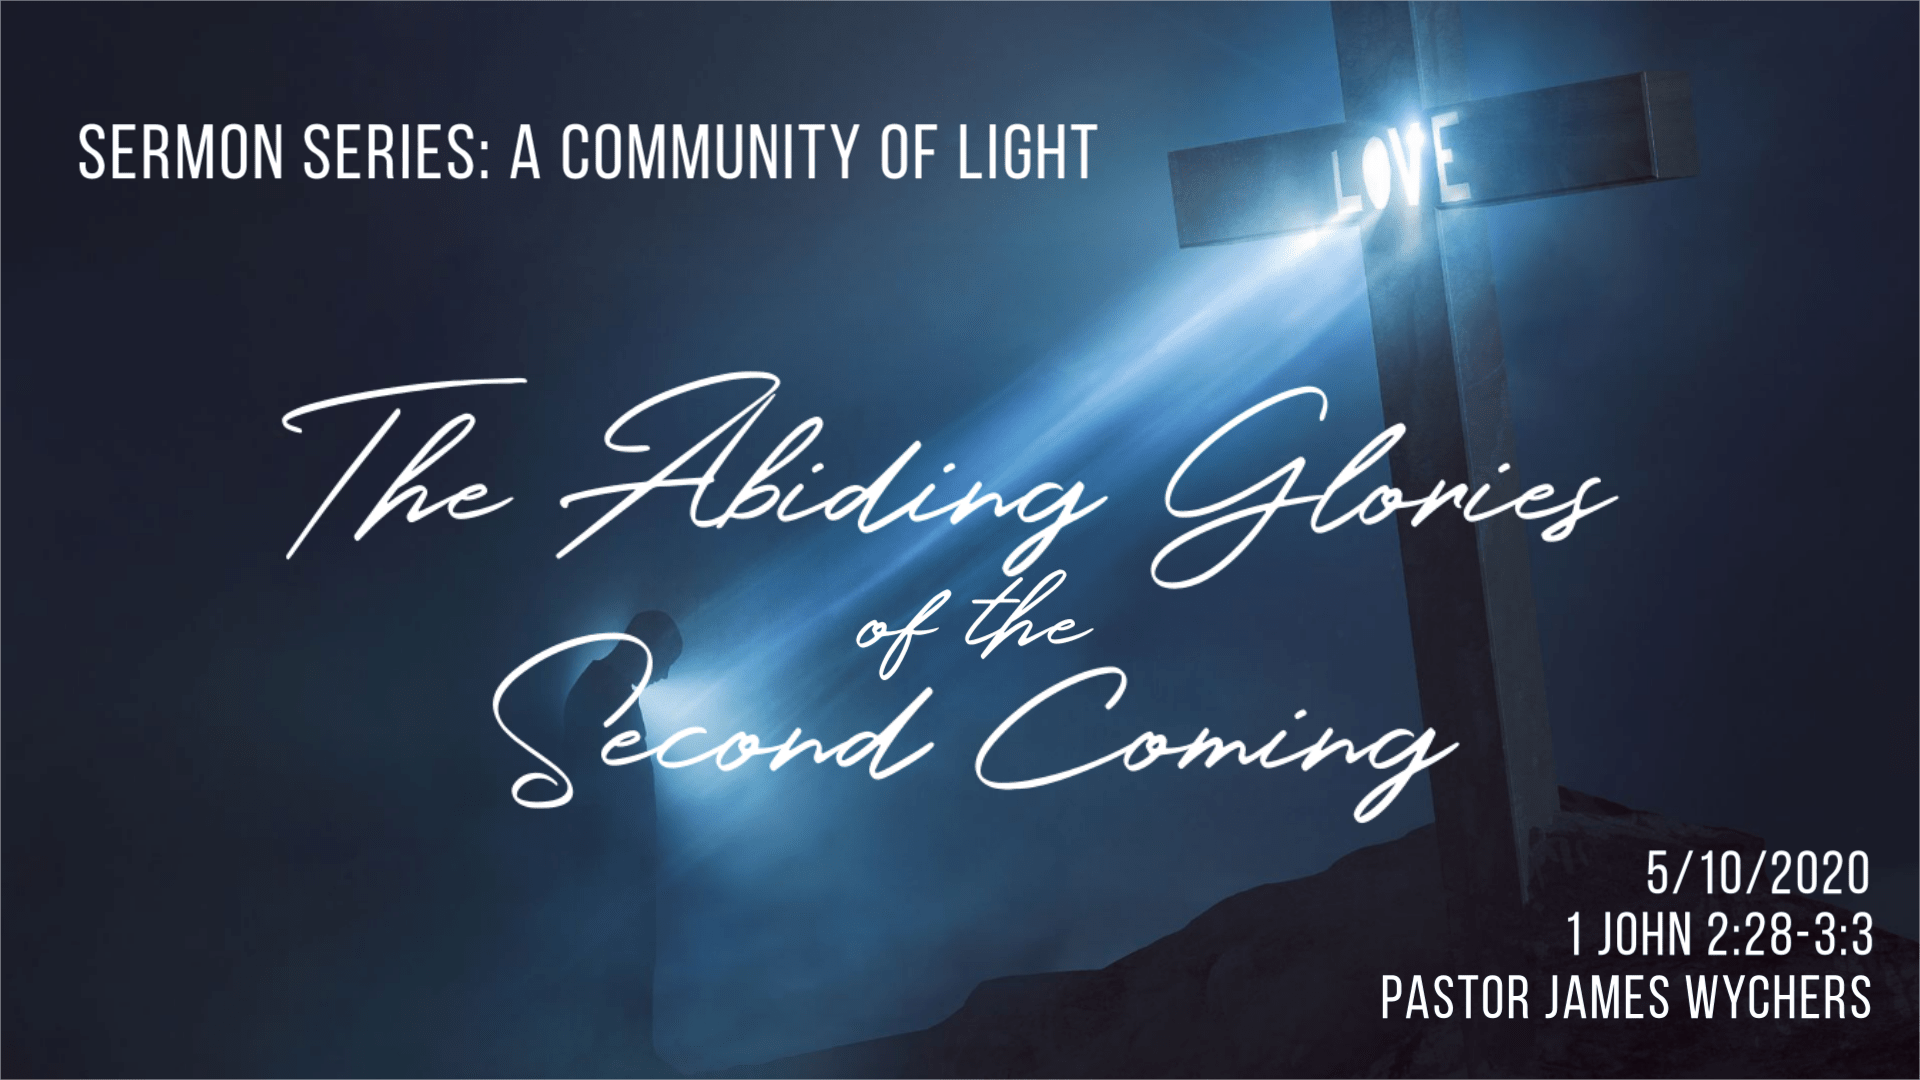 The_Abiding_Glories_of_the_Second_Coming (1)-min